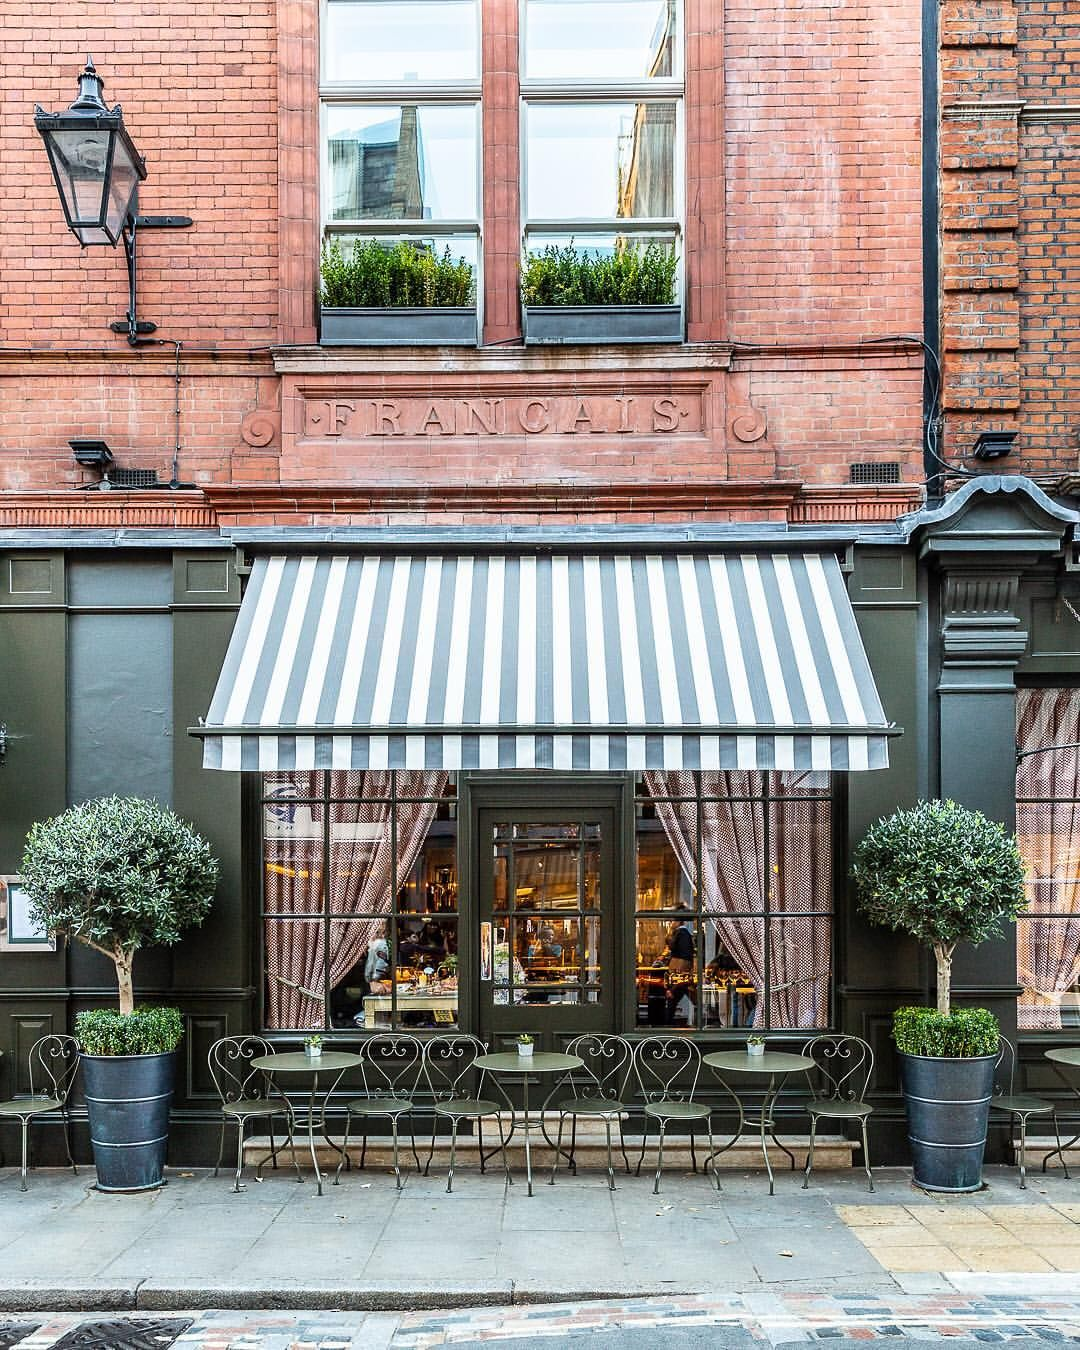 A Striped Awning On A Restaurant Facade In London S Covent Garden This Part Of The City Has Great Places To E Porch Cafe Restaurant Facade Restaurant Exterior